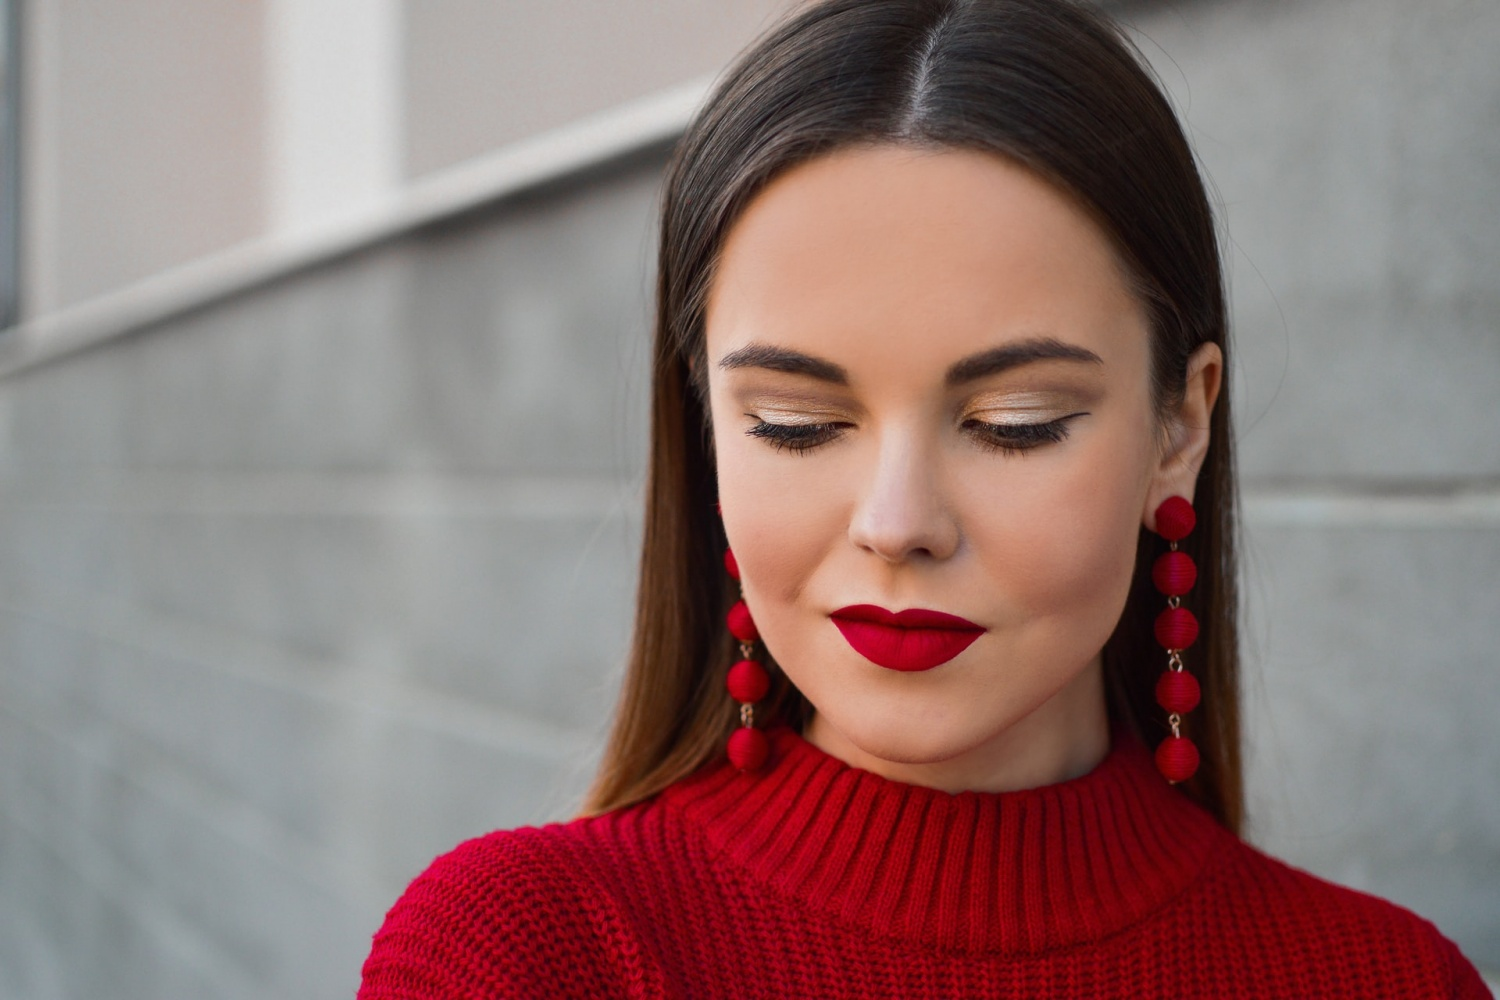 Top Winter Makeup Trends For 2020: No to Doom and Gloom